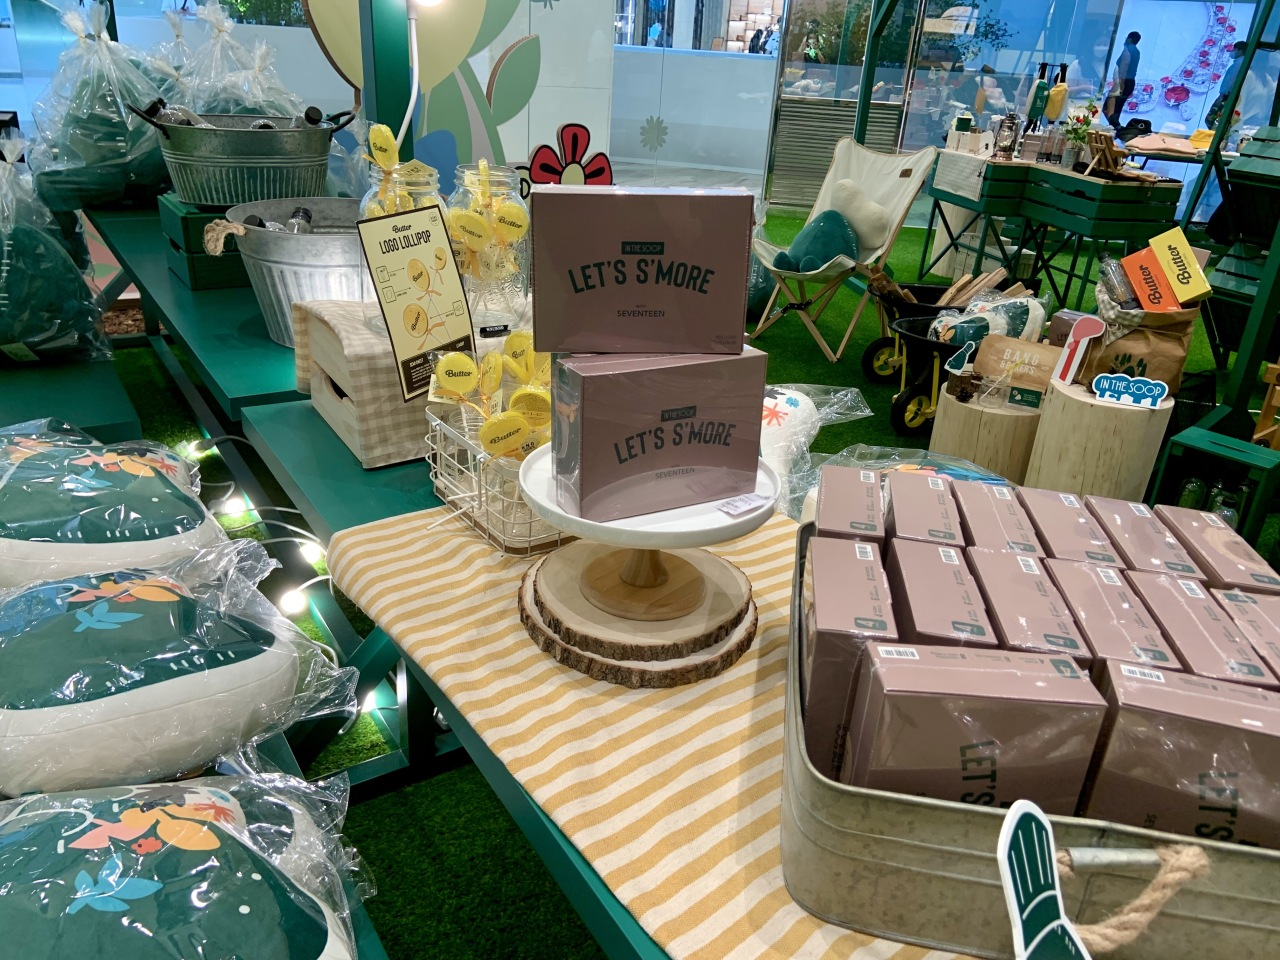 Sweets such as s'mores and lollipops are displayed on a table. (Park Jun-hee/The Korea Herald)